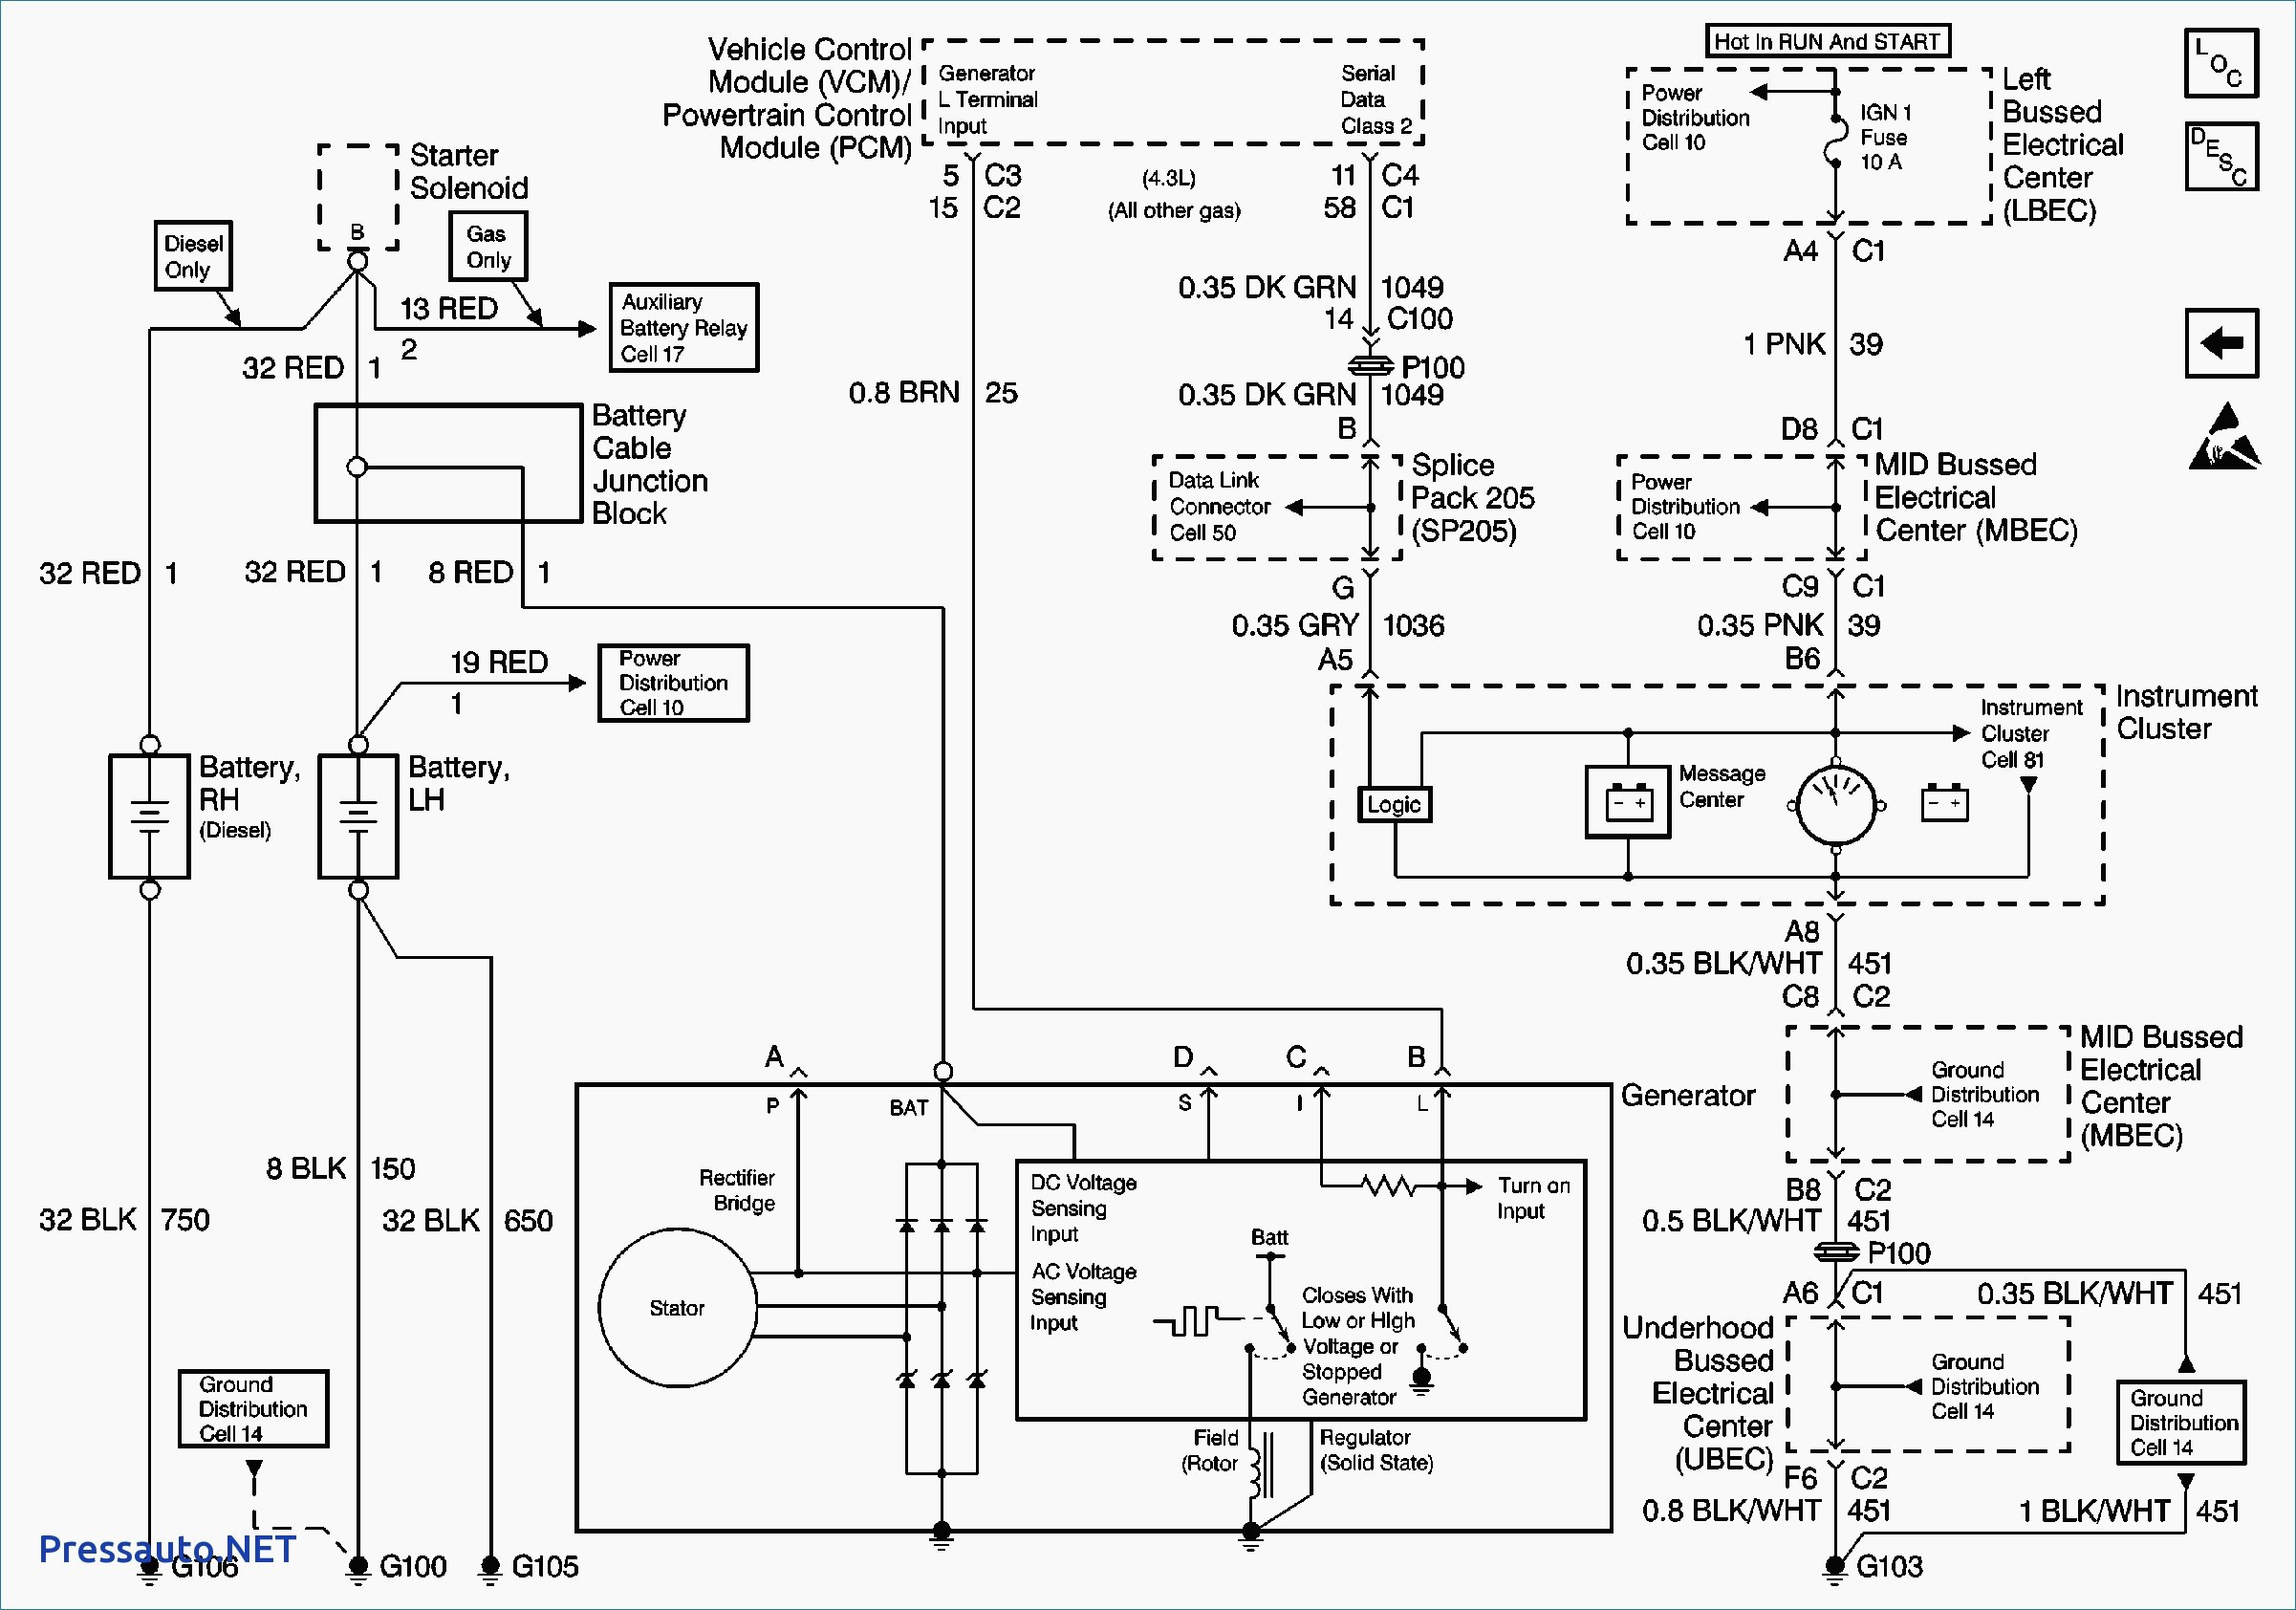 2015 Chevy Silverado Trailer Wiring Diagram